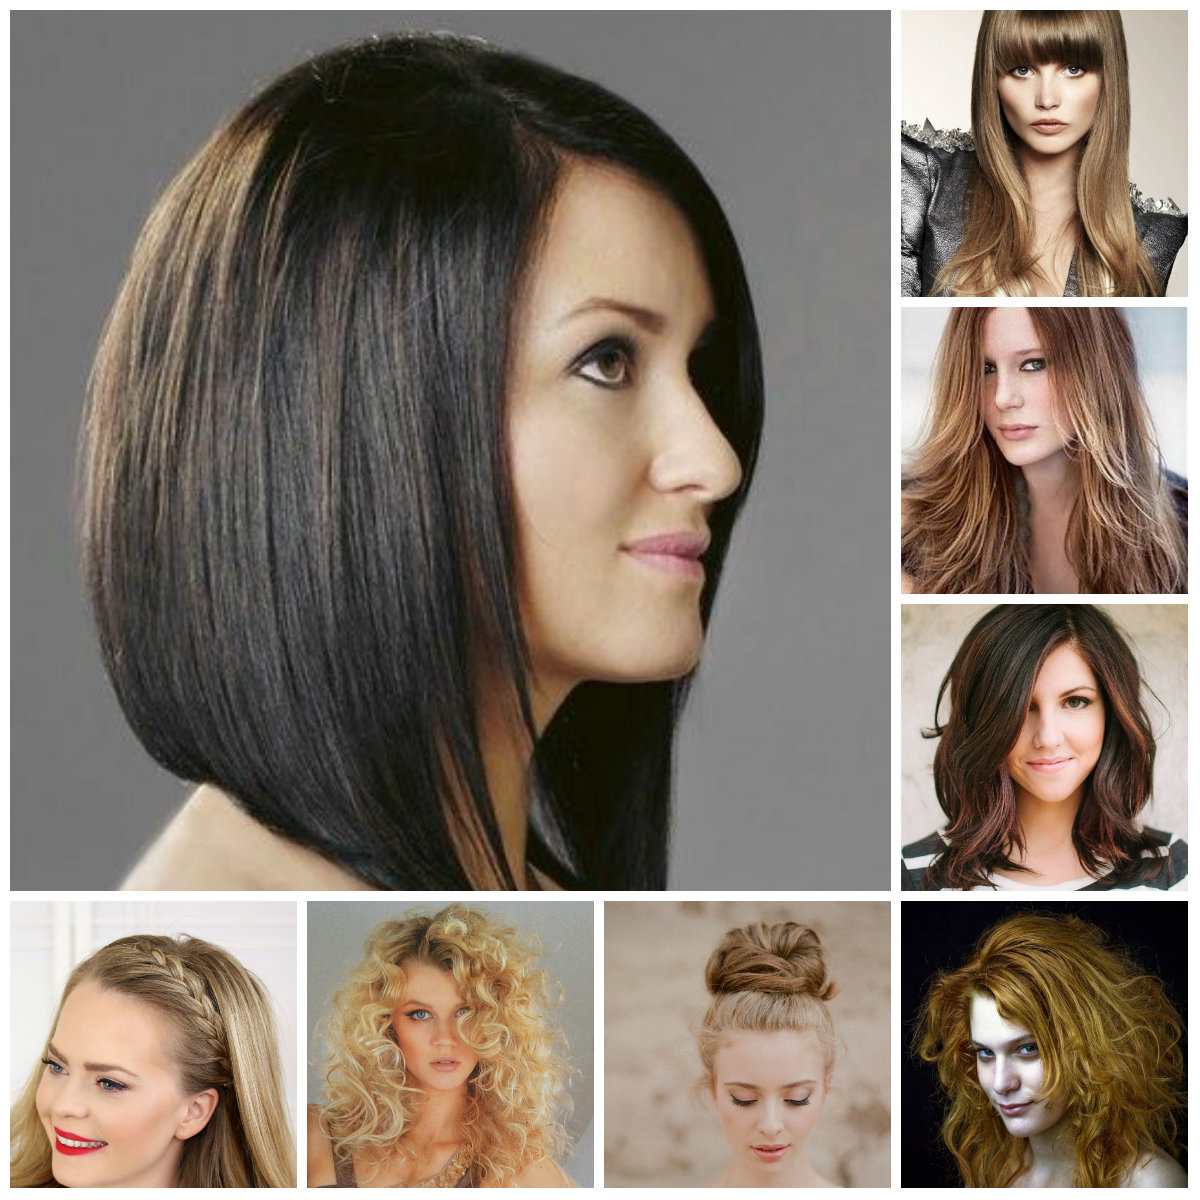 hairstyles-for-2015